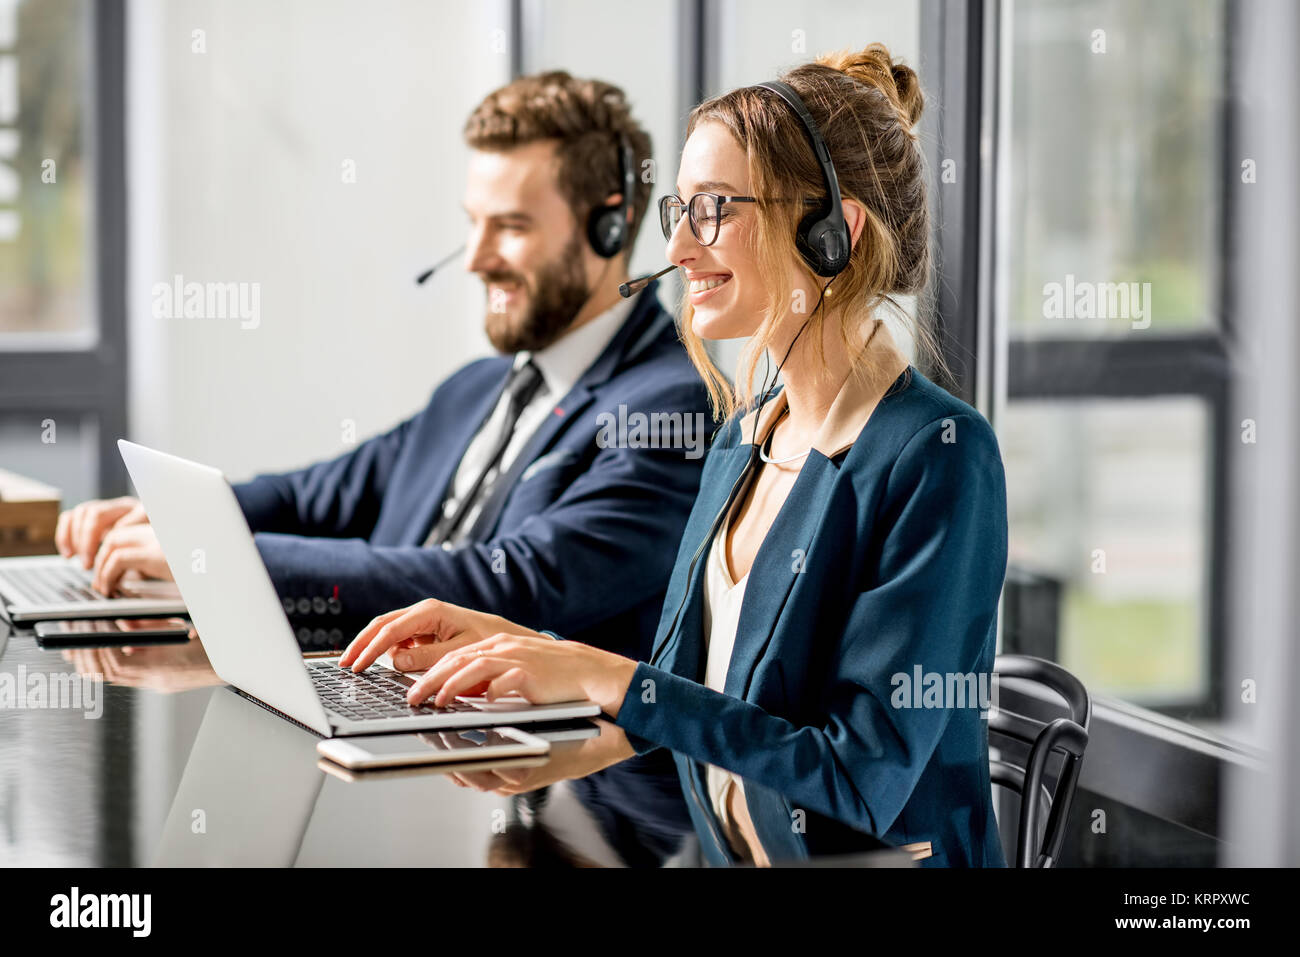 Business conference with headset - Stock Image